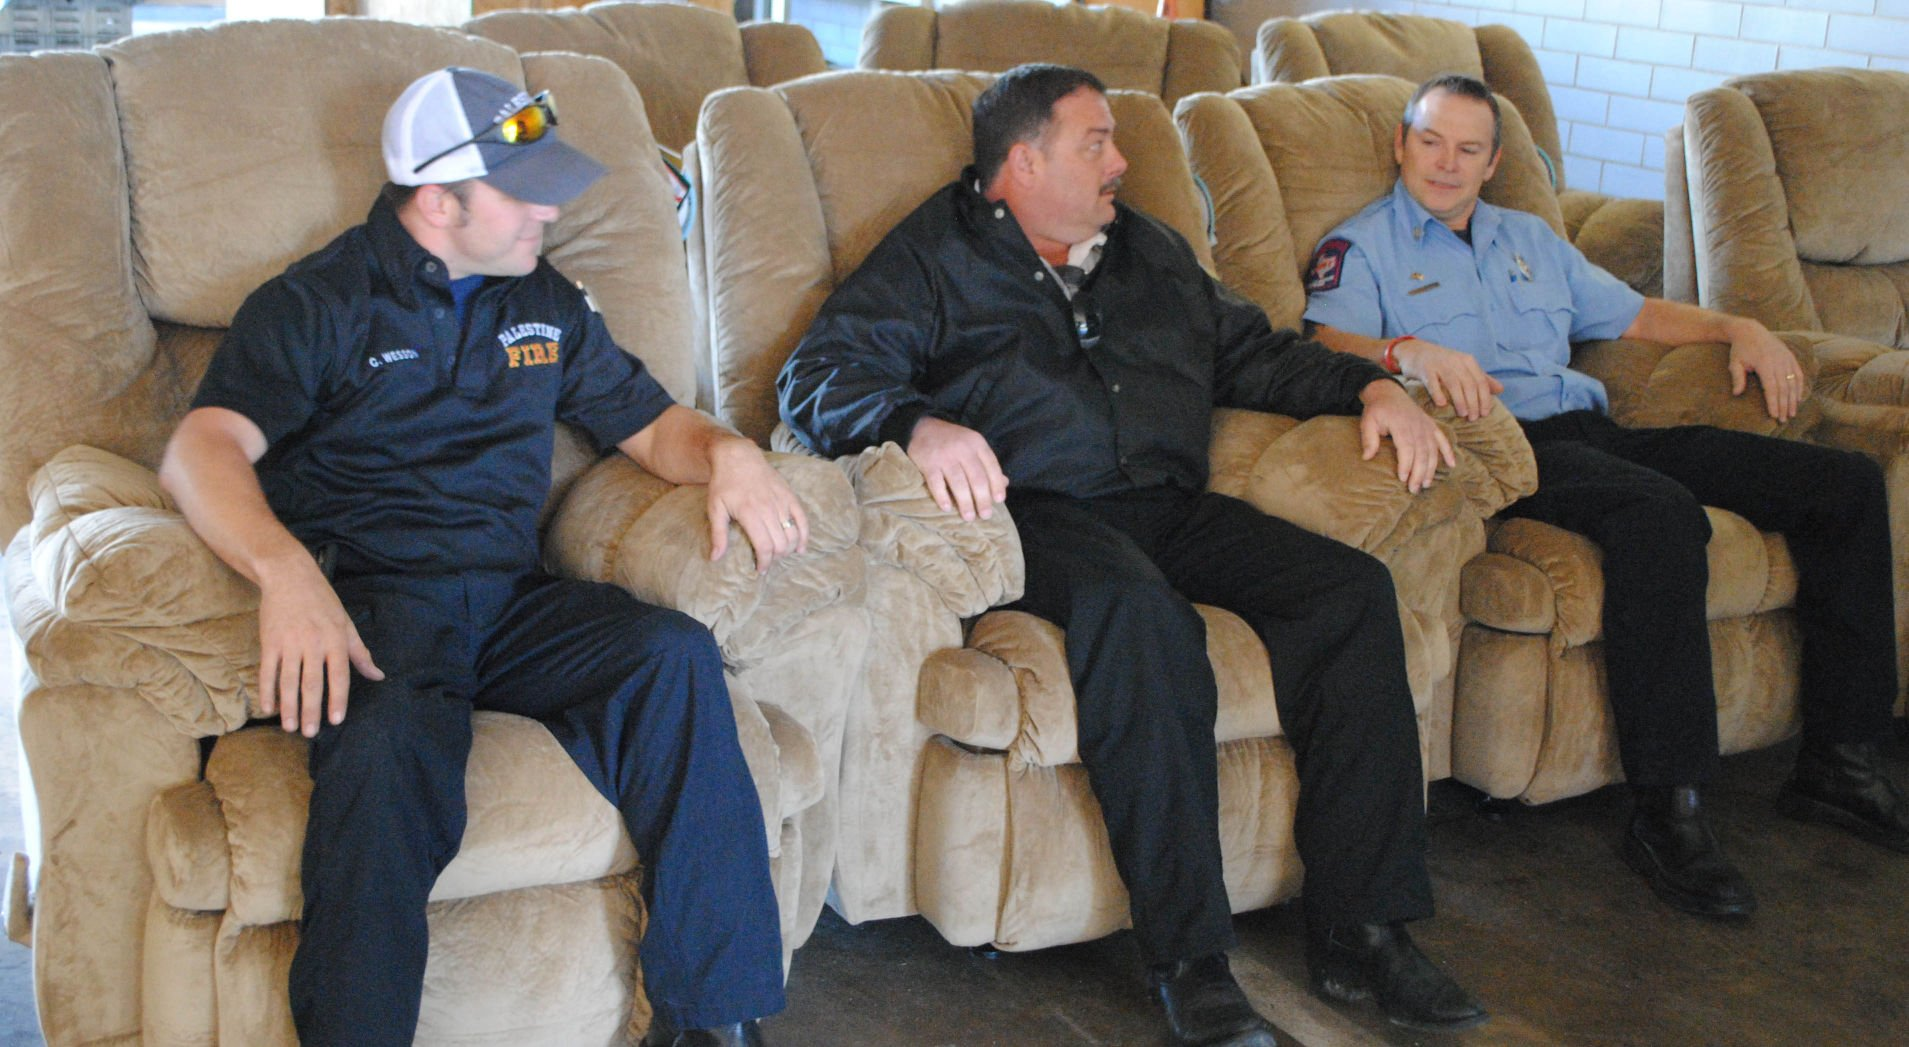 Aaronu0027s Donates Recliners To Palestine Fire Department